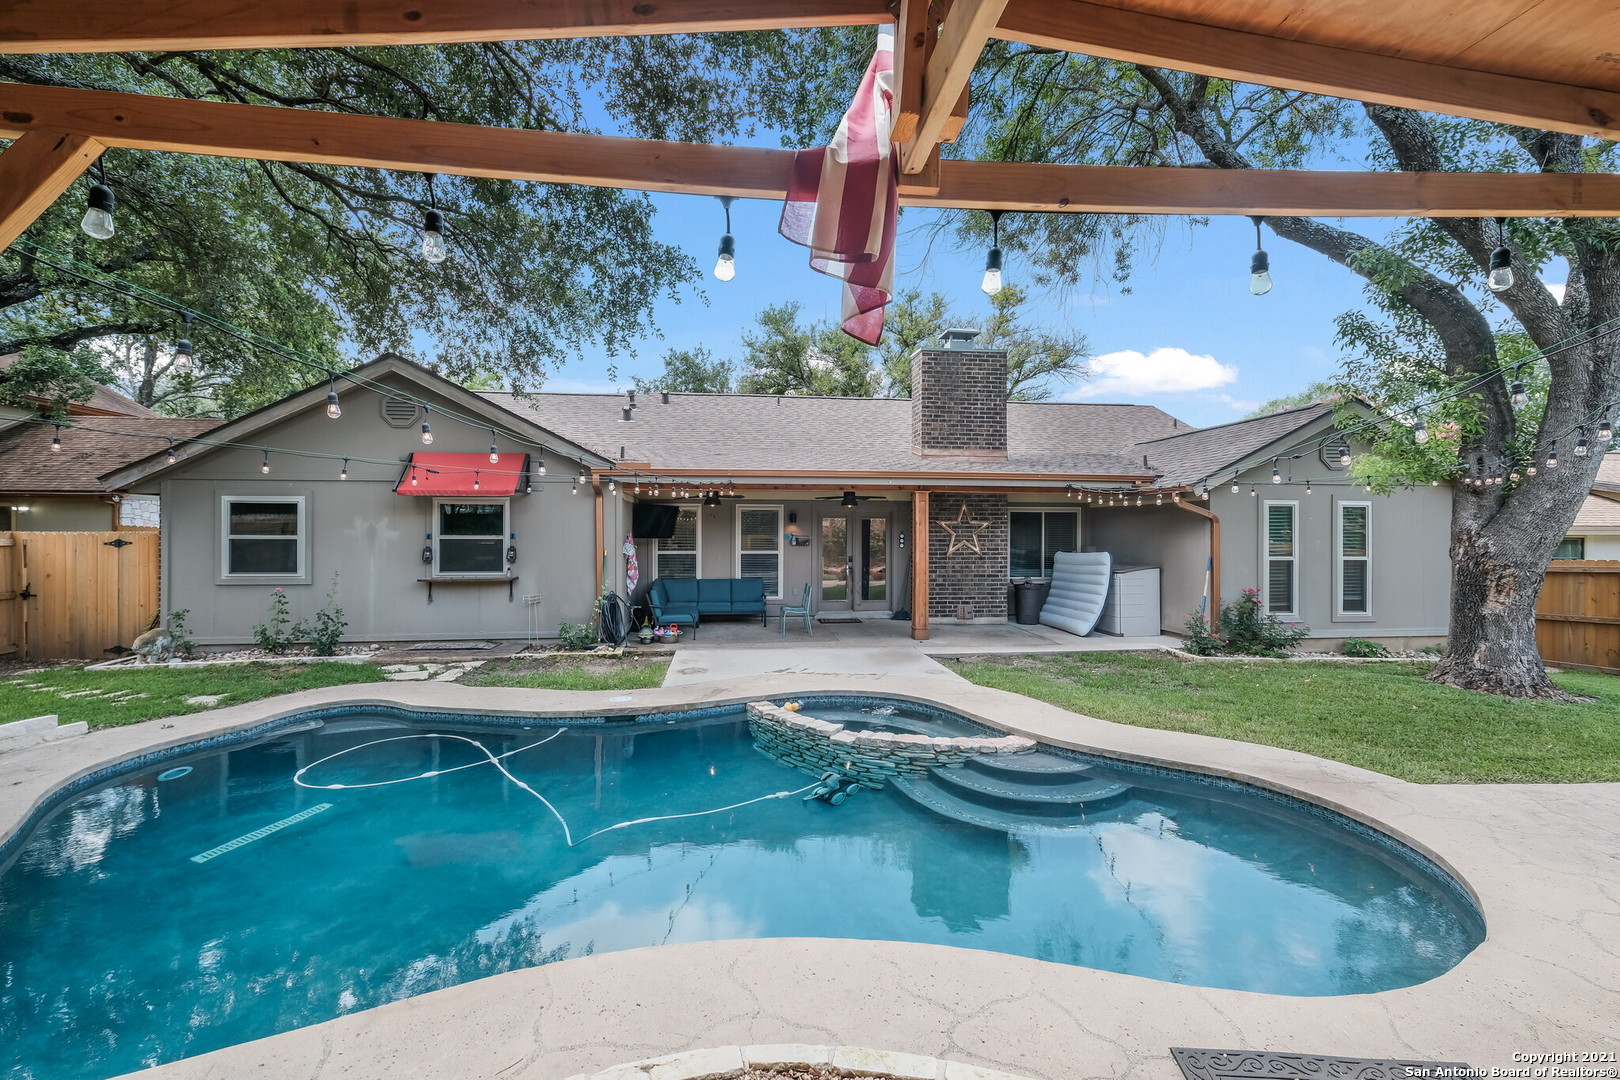 Multiple offers, highest and best offers by Sunday night please. Appraisal waivers, and leasebacks are appreciated. Open house 12-4 Saturday, 11-3 Sunday. Call agent 940 399 8101 for other times.  Back yard oasis just in time for summer! Sitterle built home, tile roof & HEATED POOL/SPA in the midst of Oak Hollow Estates. Open living, vaulted ceilings, decorative fixtures & beautiful brick fireplace. Bright, functional kitchen with stainless high end appliances. Kitchen adjacent to both the formal & casual dining with views of the pool! Relax & enjoy movies,